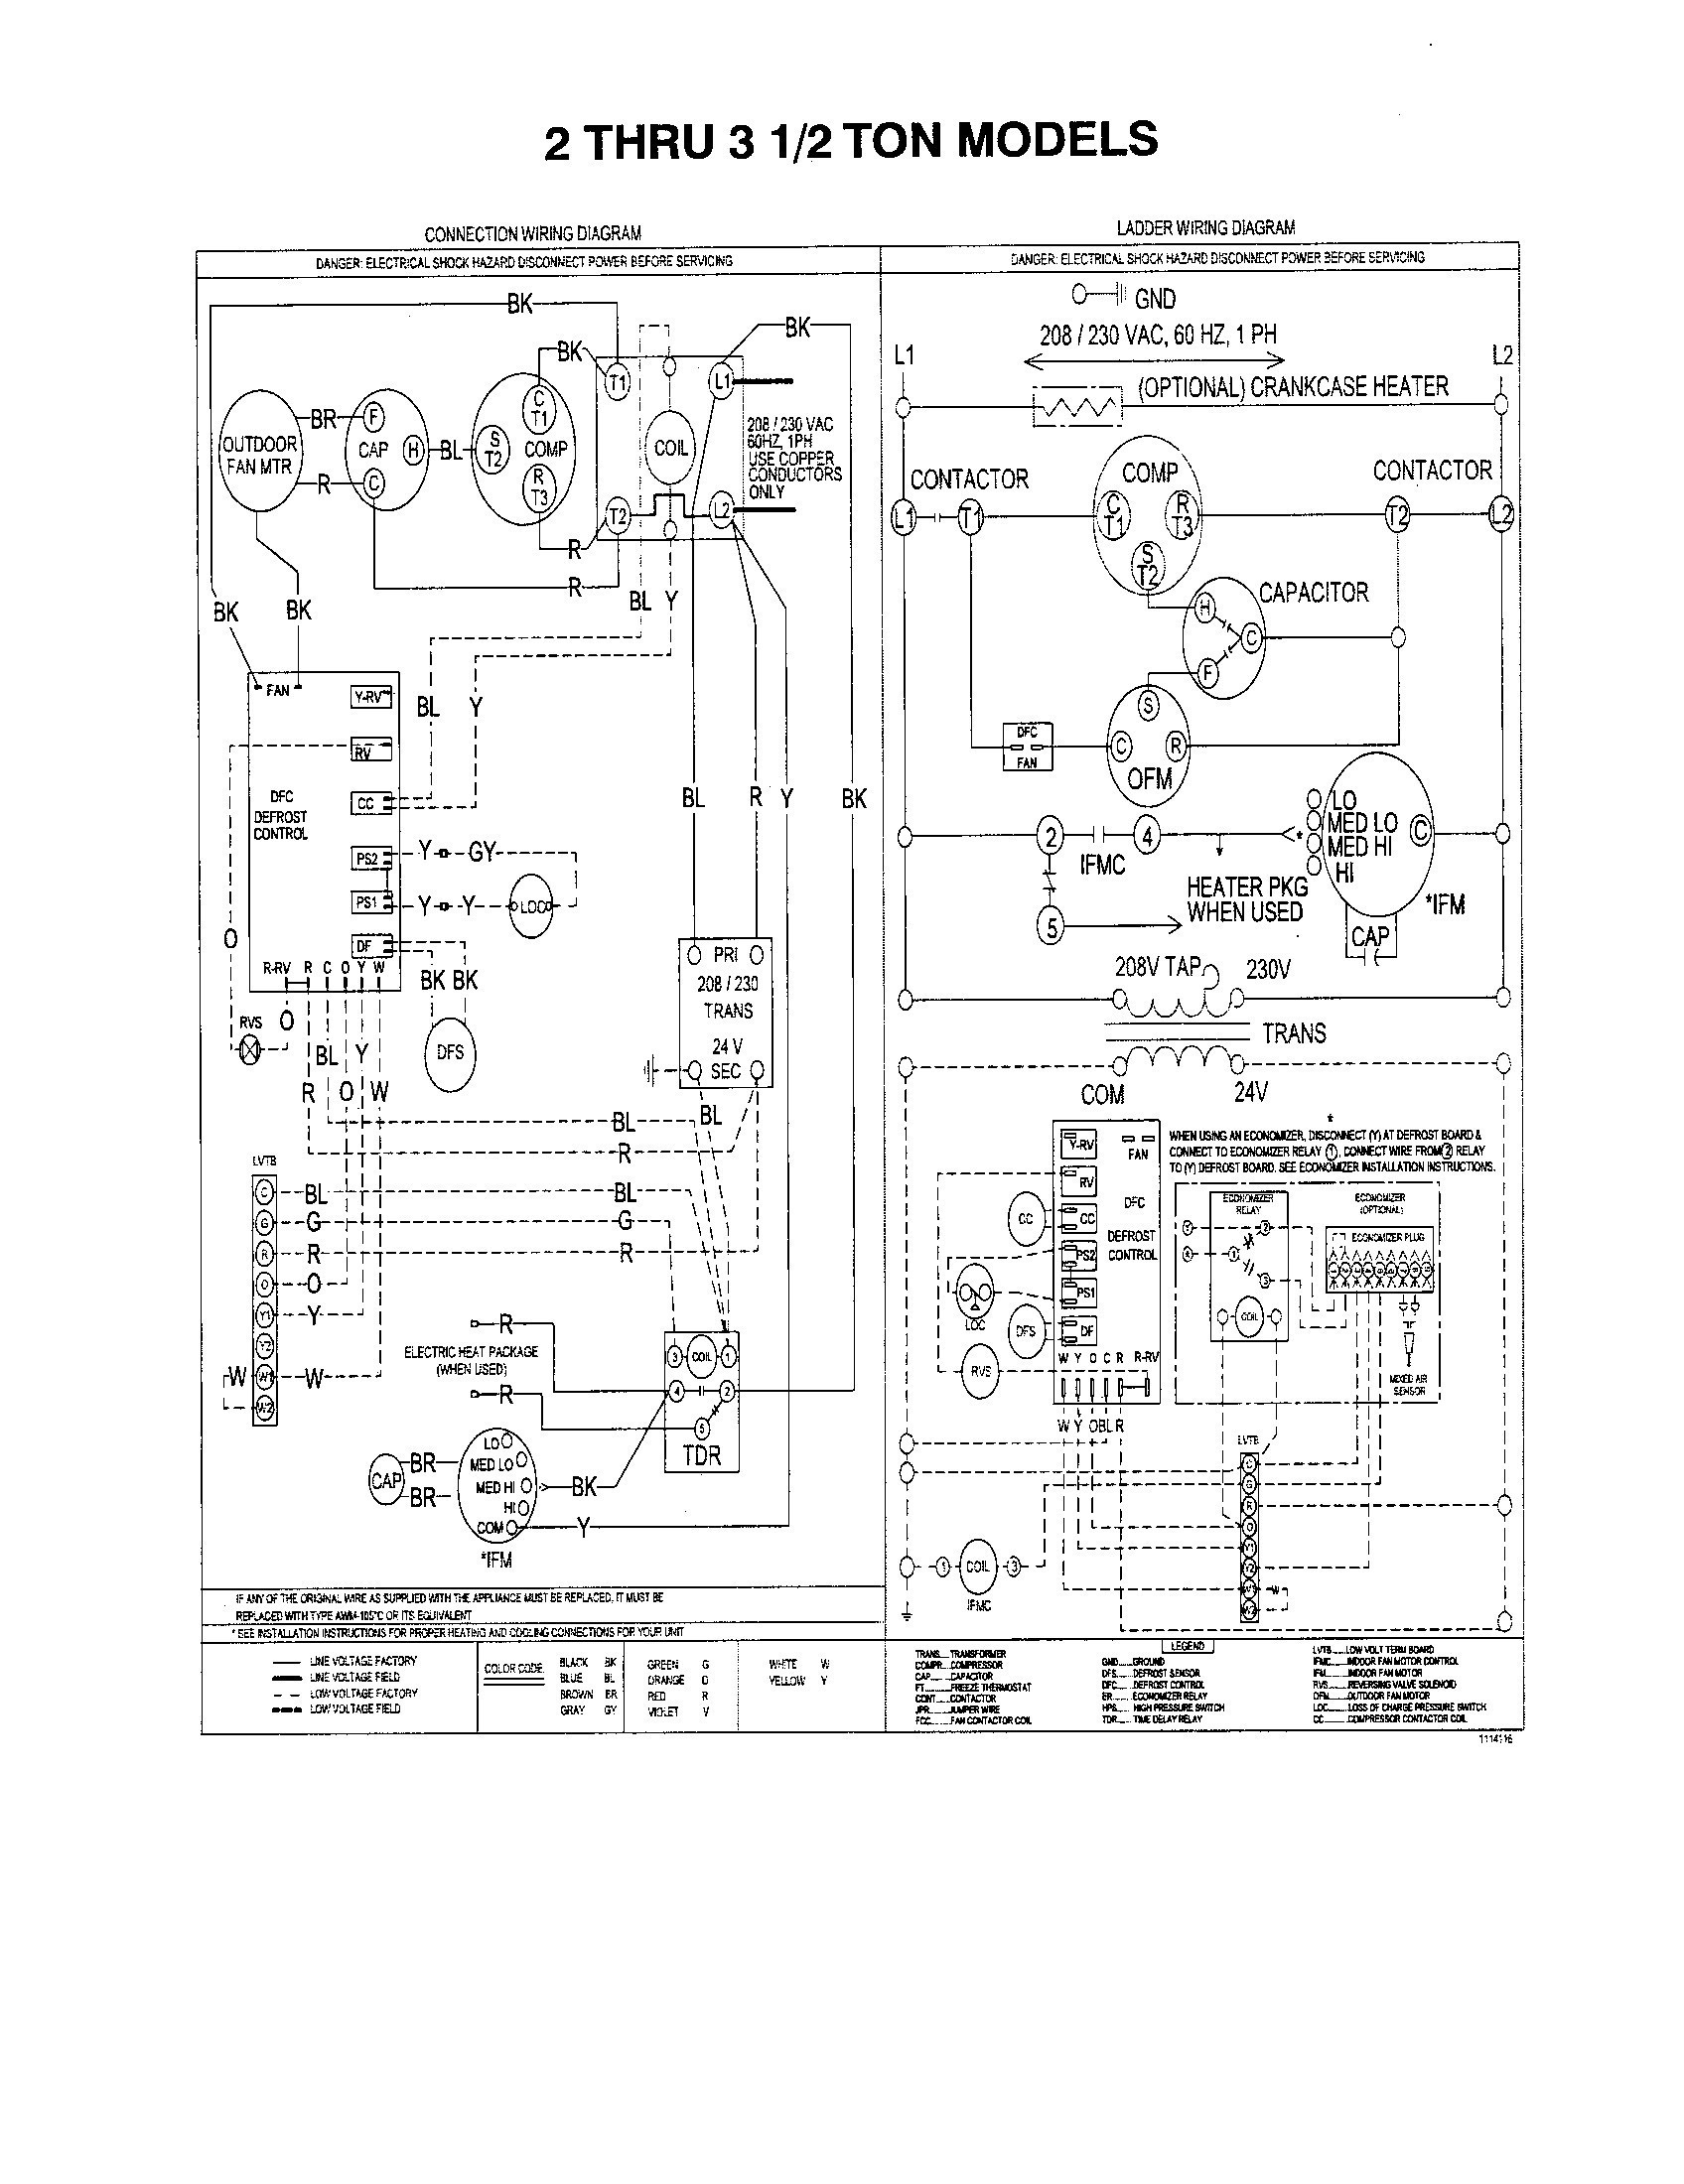 York Ac Unit Wiring Diagram | Wiring Diagram A C Unit Wiring Diagram on